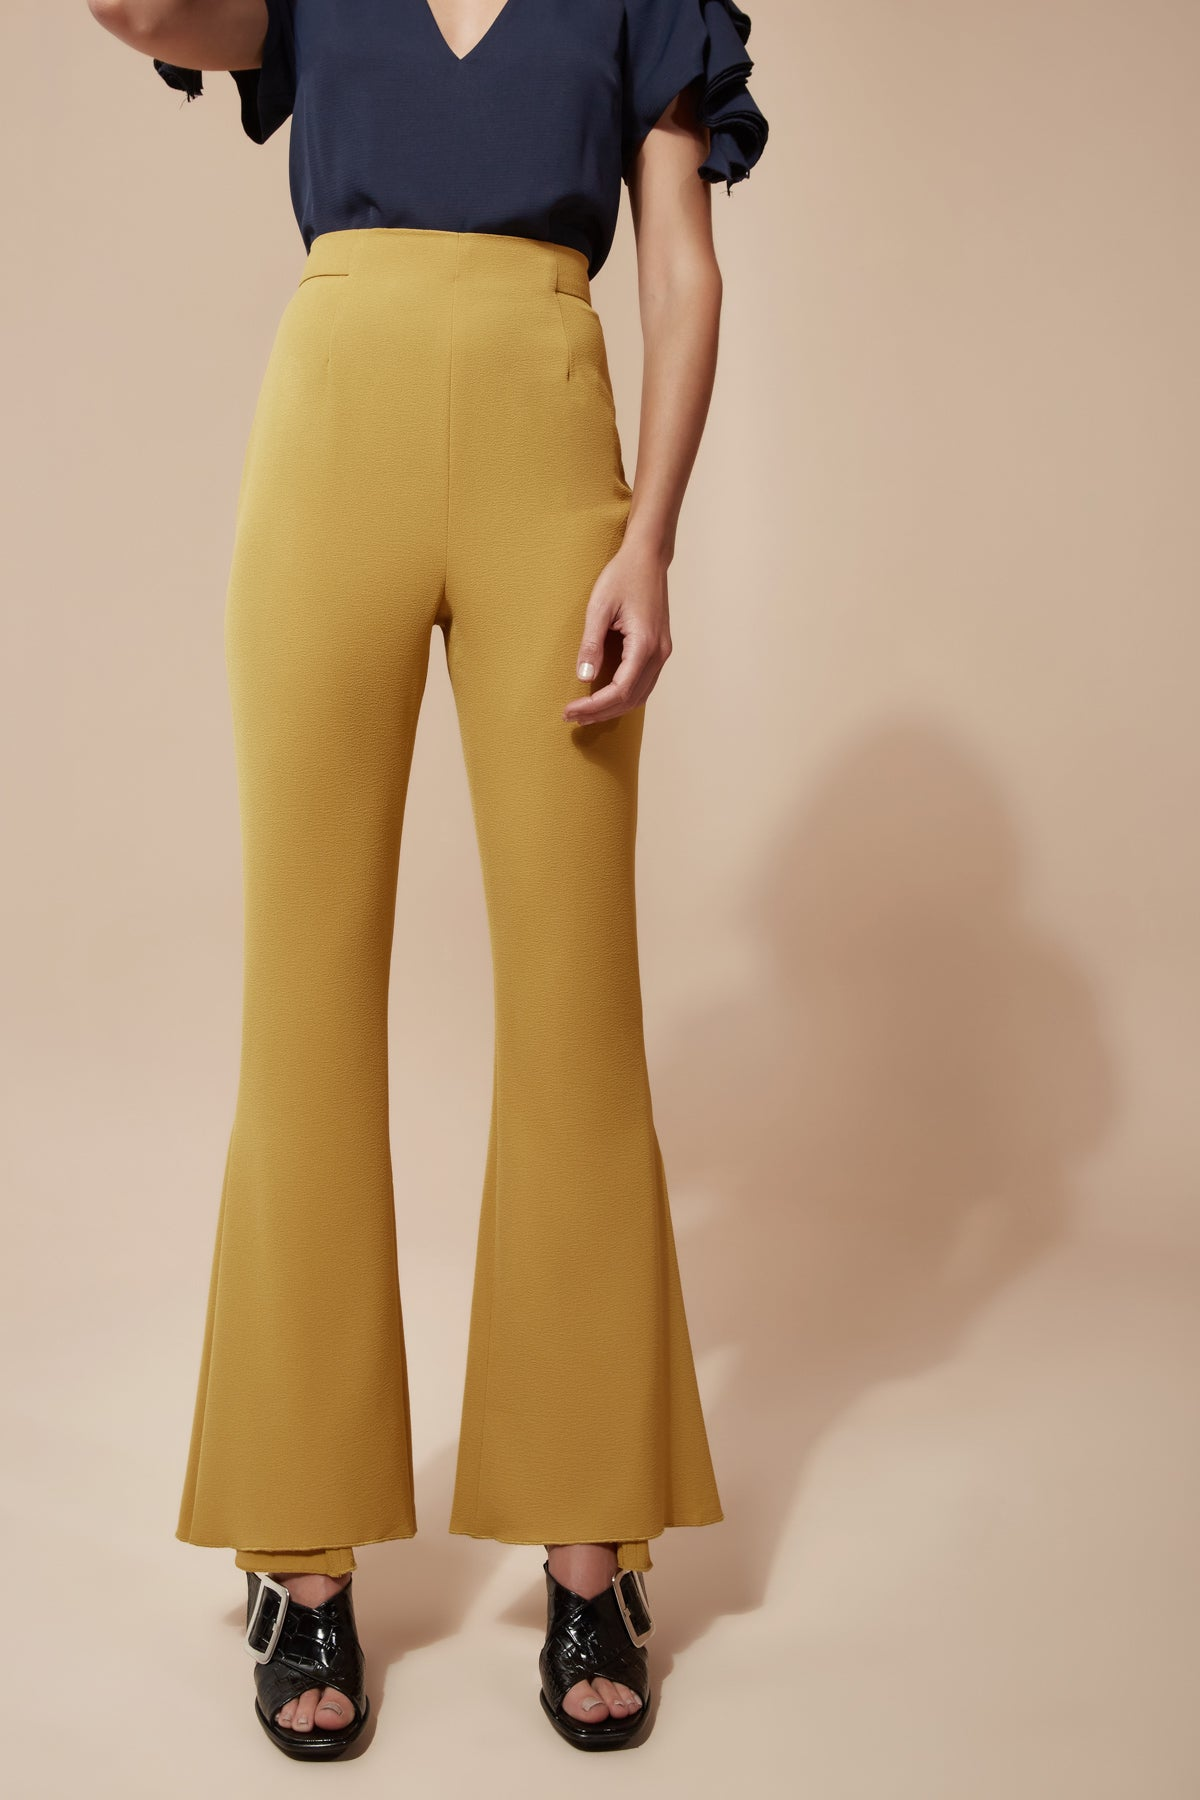 FUSION PANT chartreuse